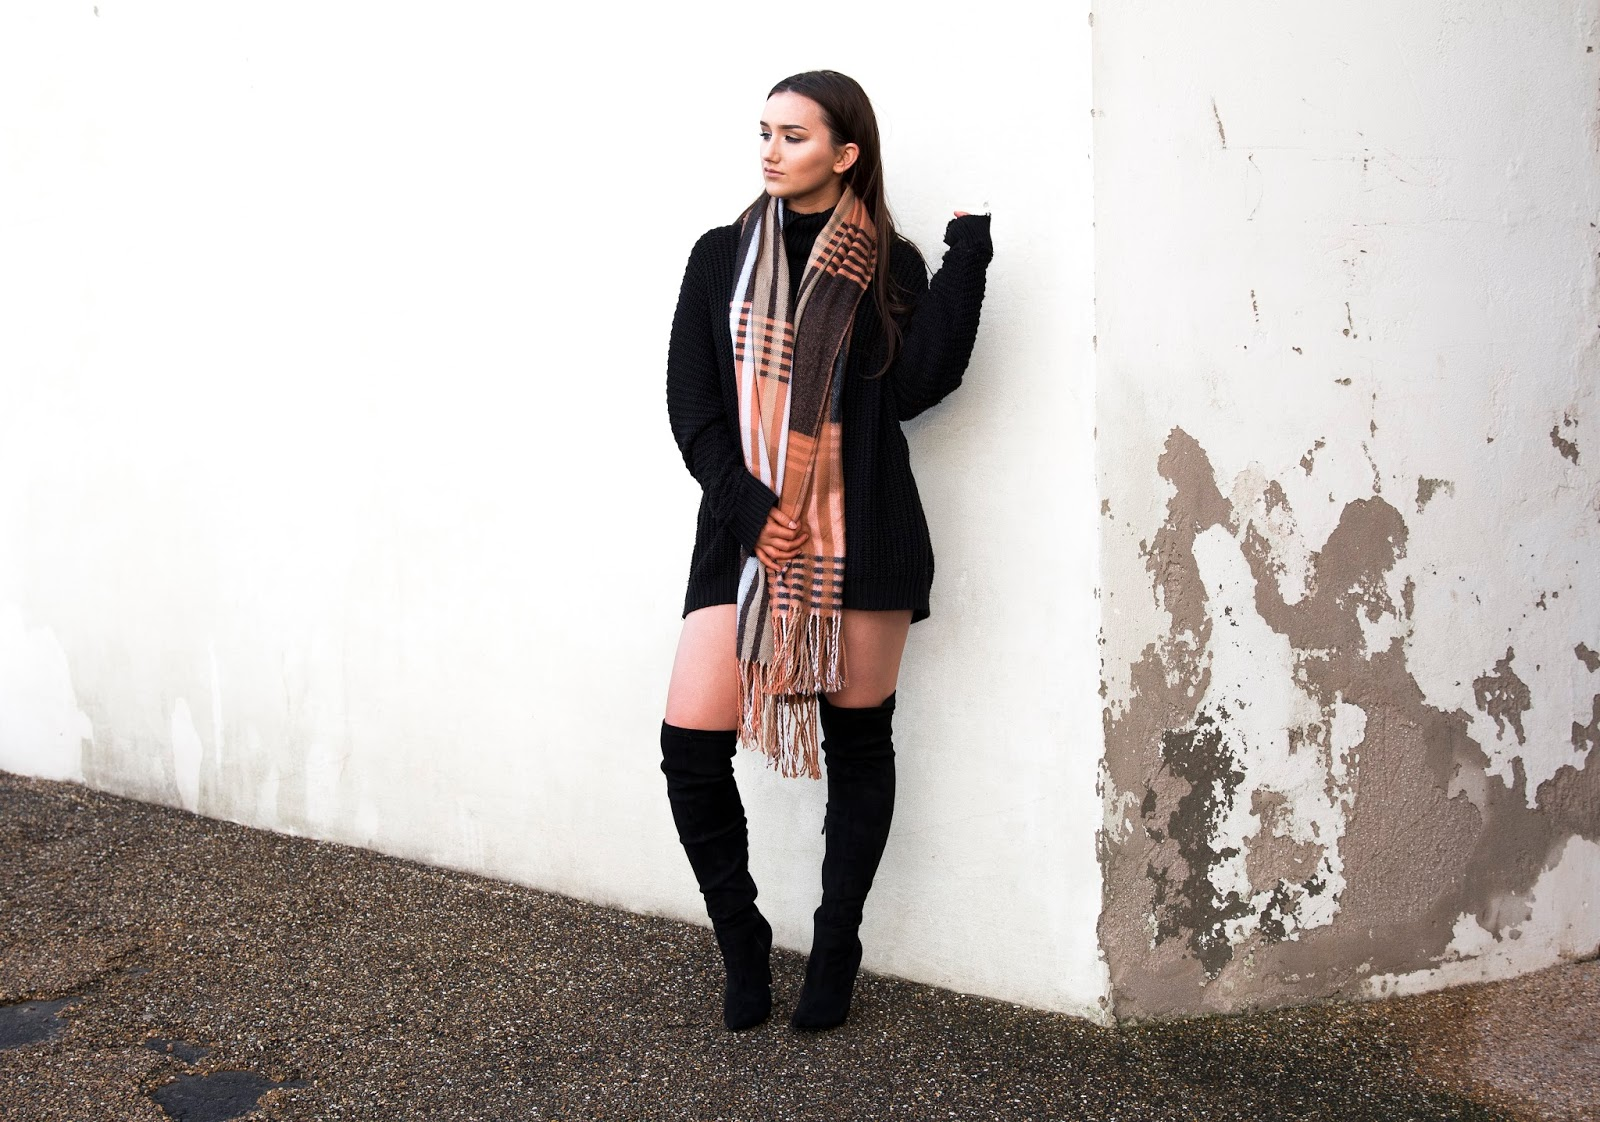 Knitted Knockout, An Outfit Post Styled by Kayley Anne Jones, featuring Knitted Jumper Dress, Knee High Boots and Tartan Scarf